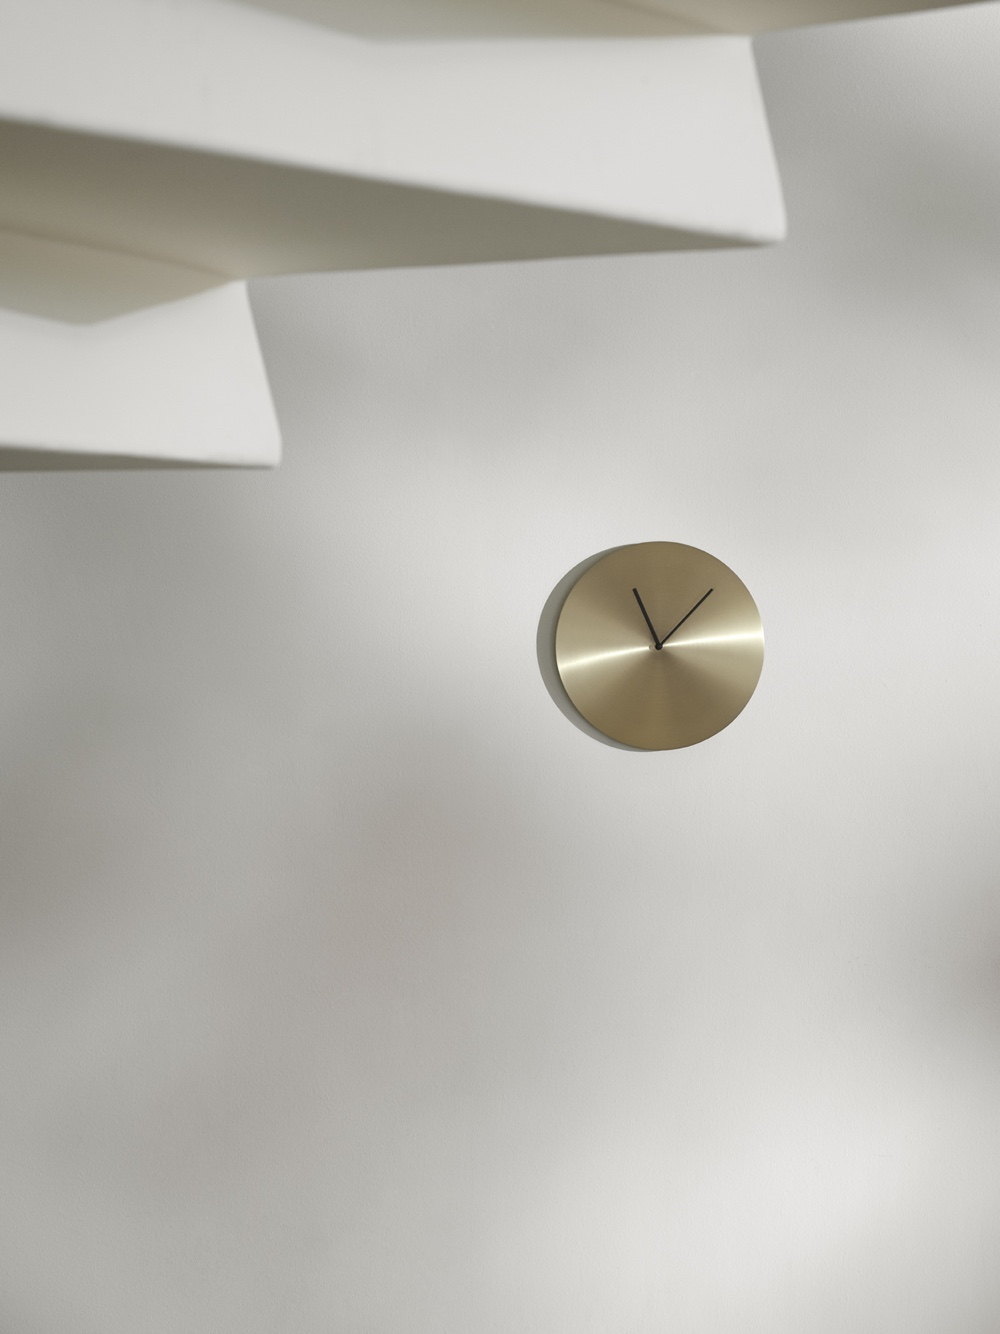 Metal Wall Clock in brass